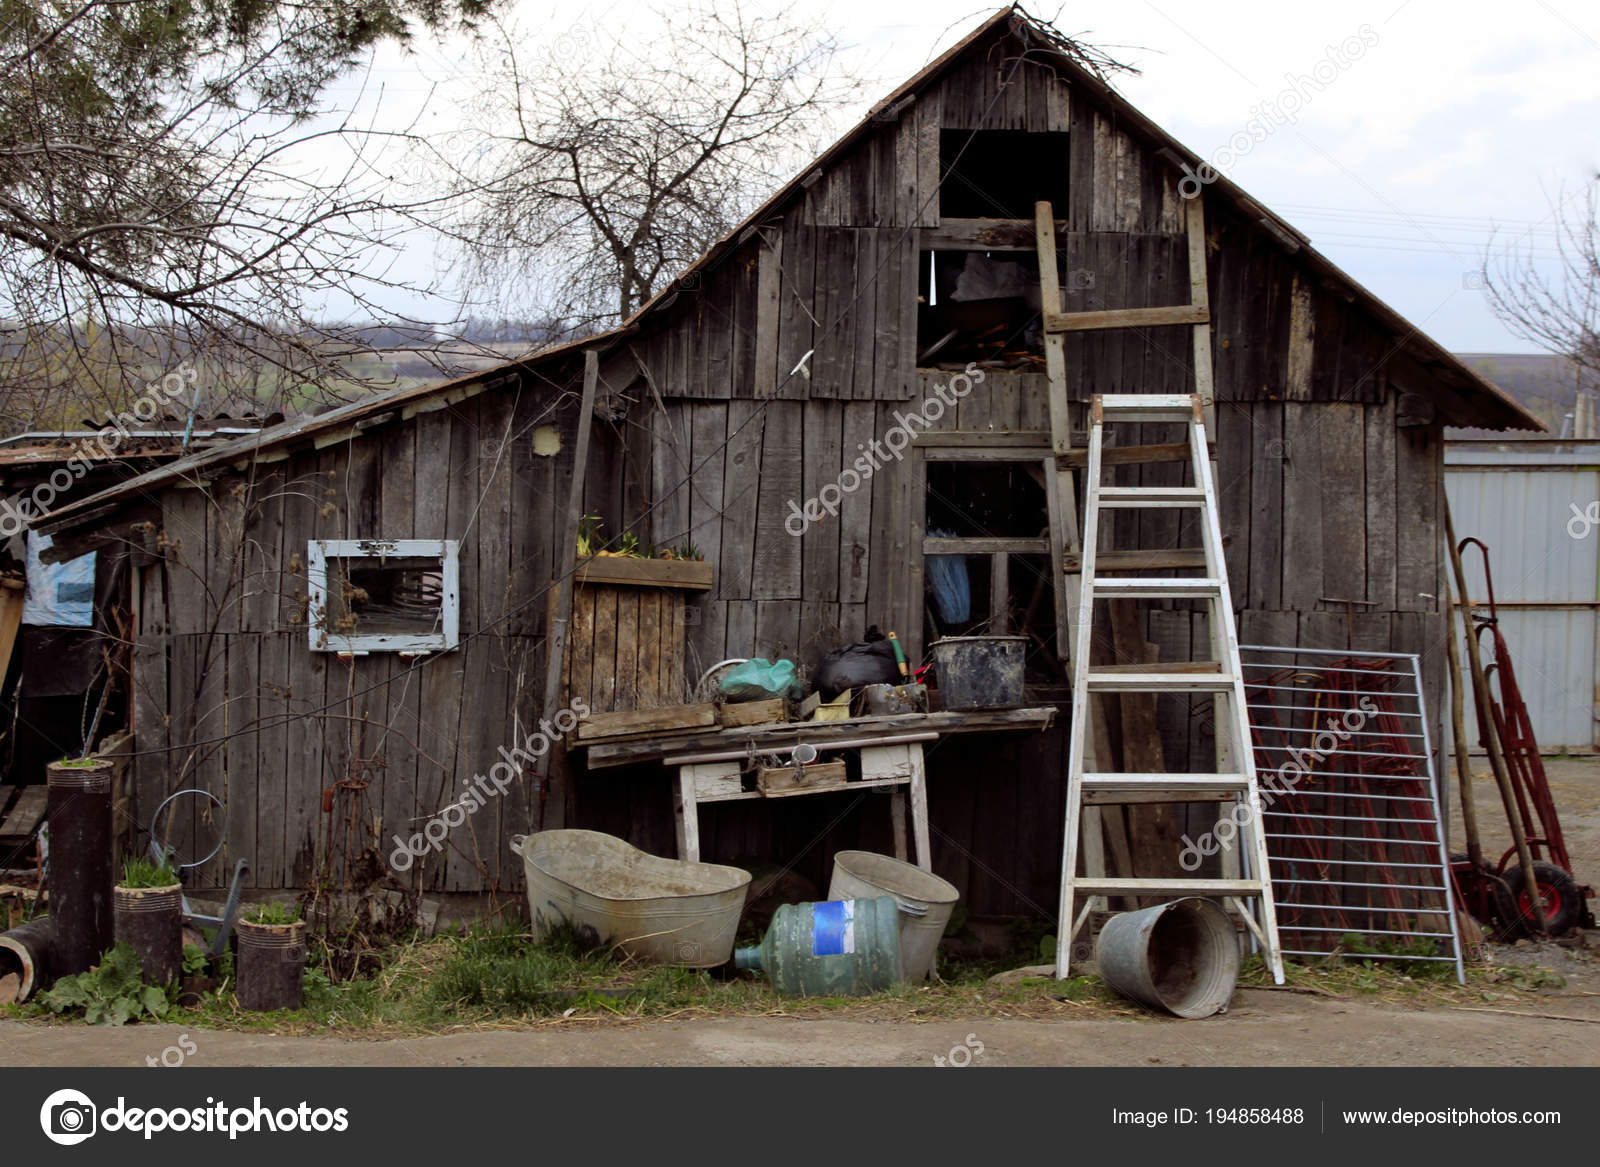 Old Small Wooden House Non Residential Old House Wooden Staircase Stock Photo C Stepunina Gmail Com 194858488